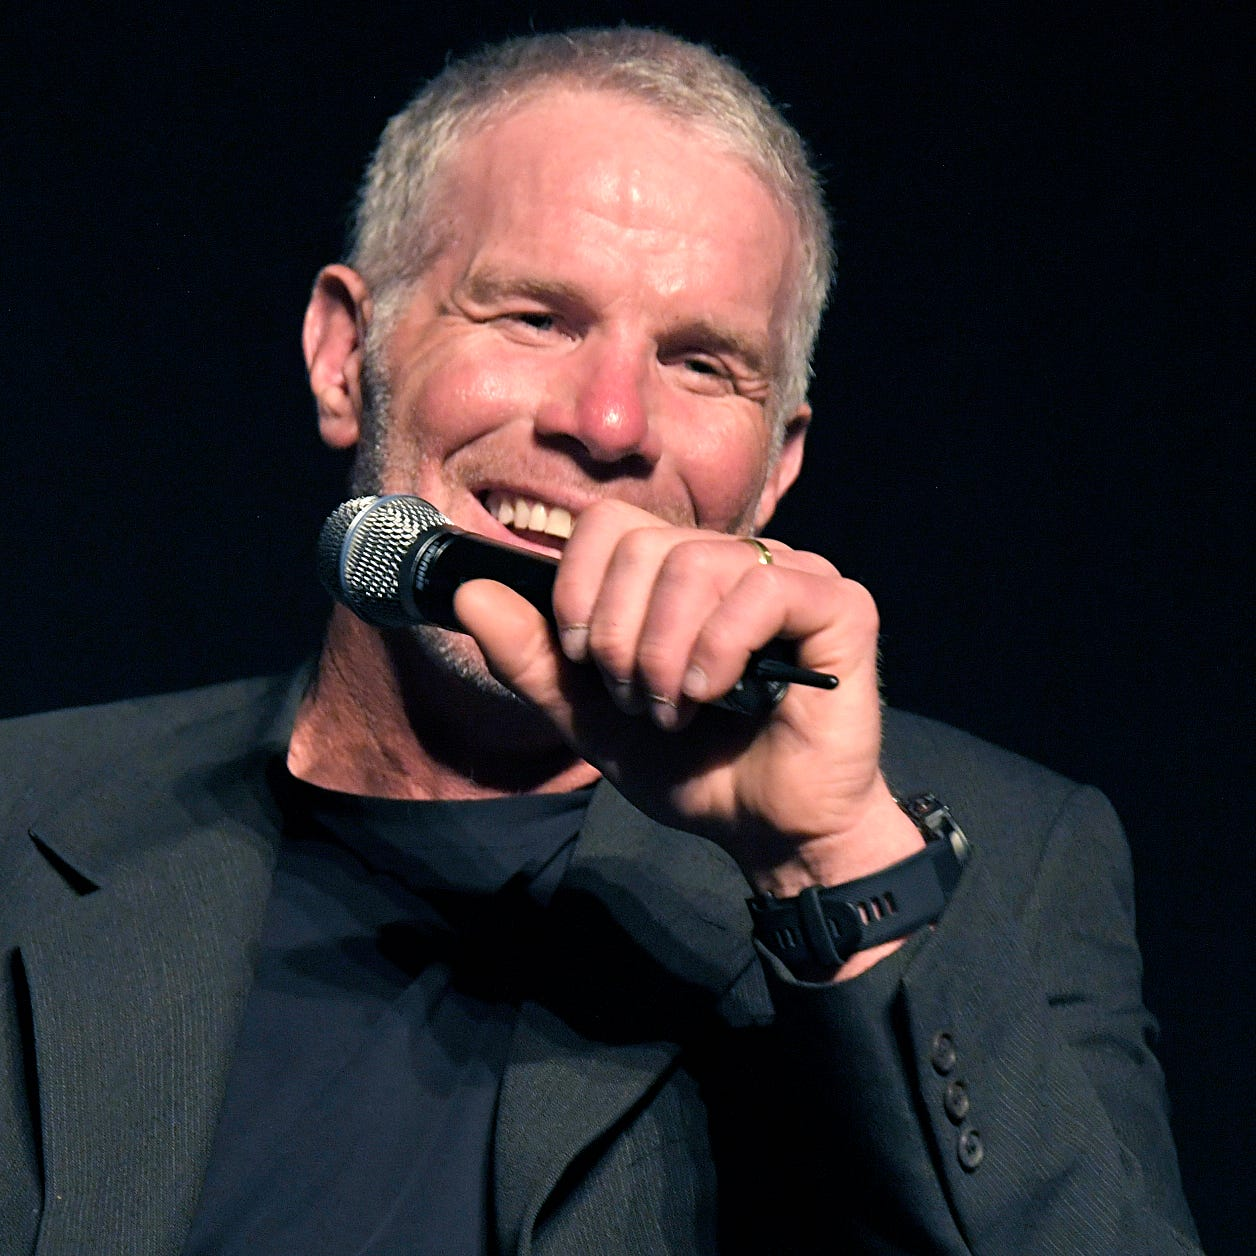 Brett Favre was the guest speaker at Middle Tennessee Christian School's Legacy of Light Gala at their Murfreesboro school on Thursday, April 18, 2019.